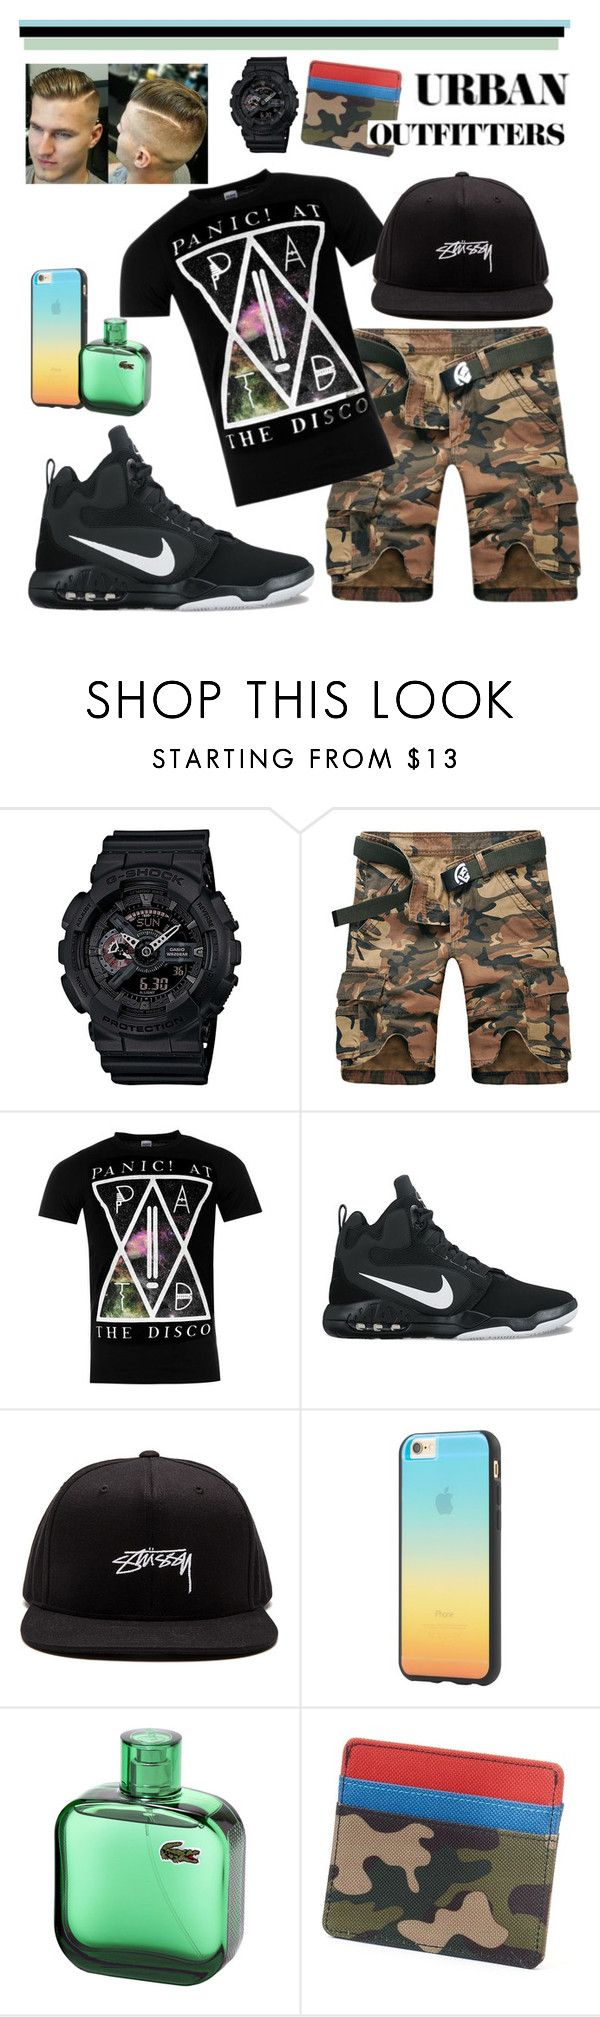 """""""PATD"""" by tropical-vegas-finest ❤ liked on Polyvore featuring G-Shock, NIKE, Stussy, Tavik Swimwear, Urban Pipeline, Urban Outfitters, men's fashion and menswear"""